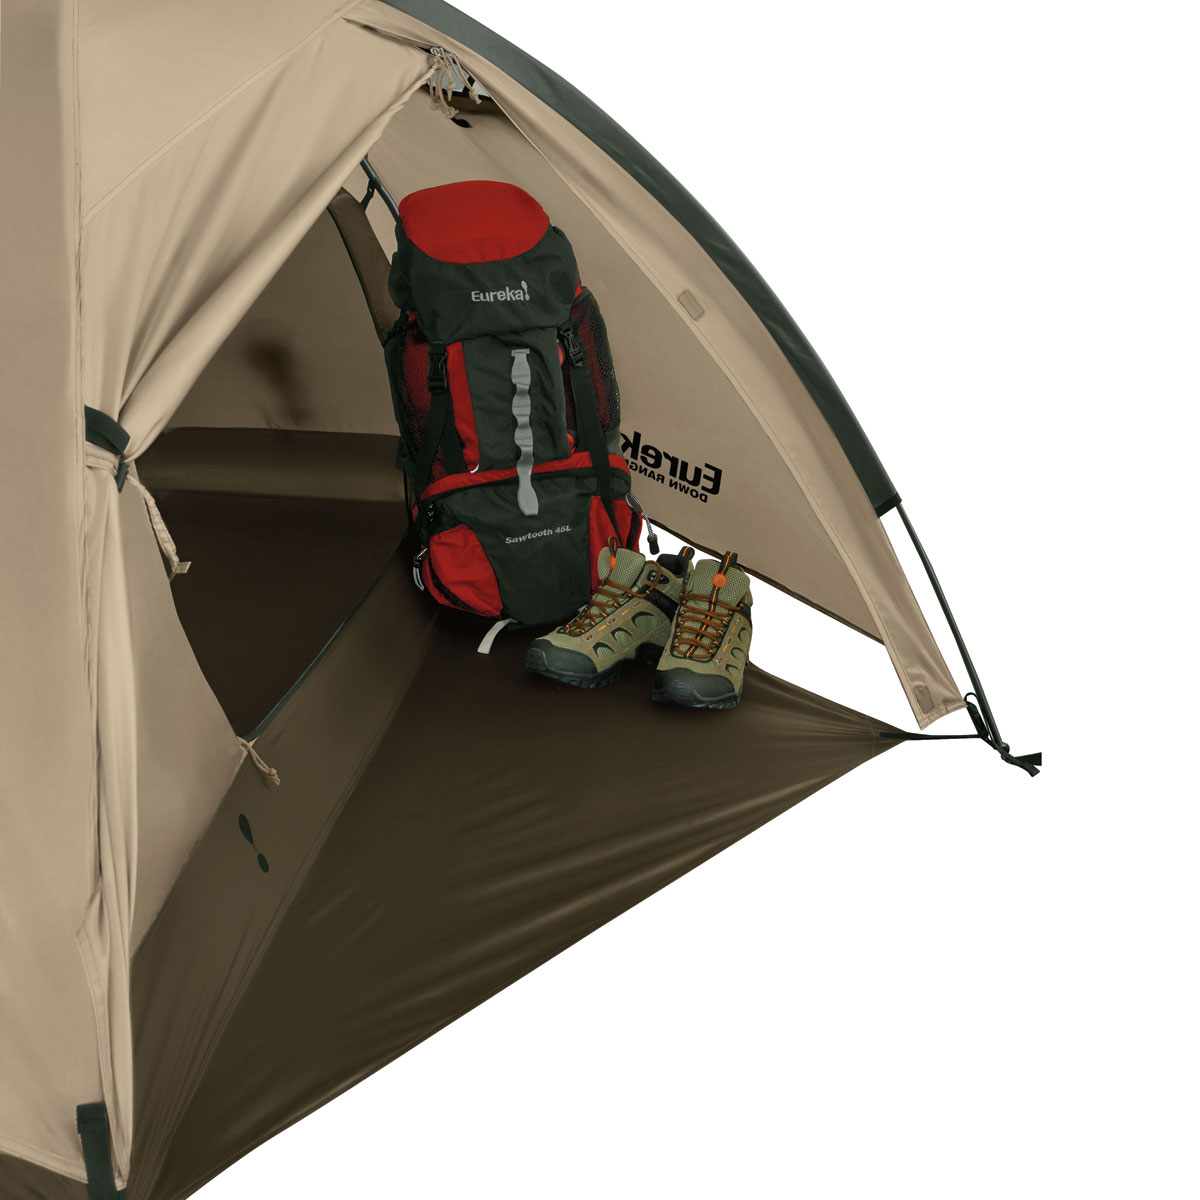 Down Range Solo 1 Person Tent. Vestibule area with floor Storage Pockets  sc 1 st  Tents - Johnson Outdoors & Down Range Solo 1 Person Tent | Eureka!